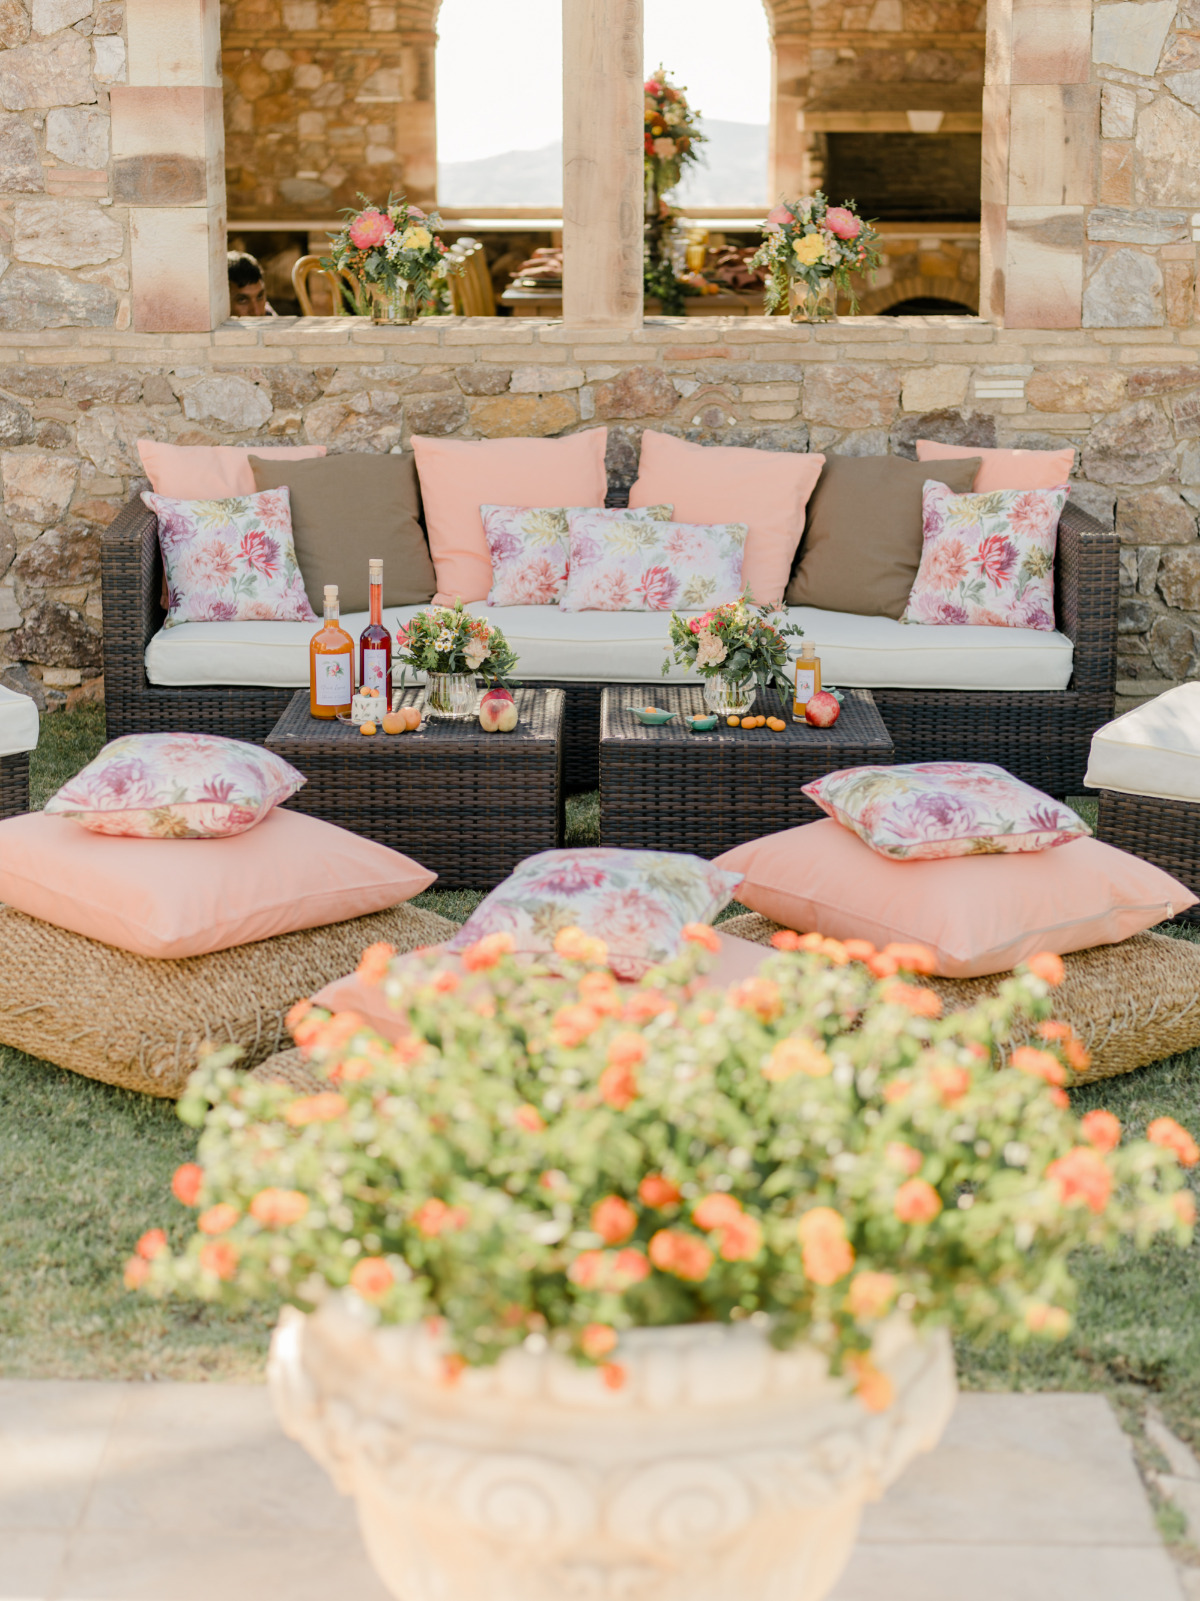 A Styled Shoot In Greece Full Of Optimism Amid A Global Pandemic